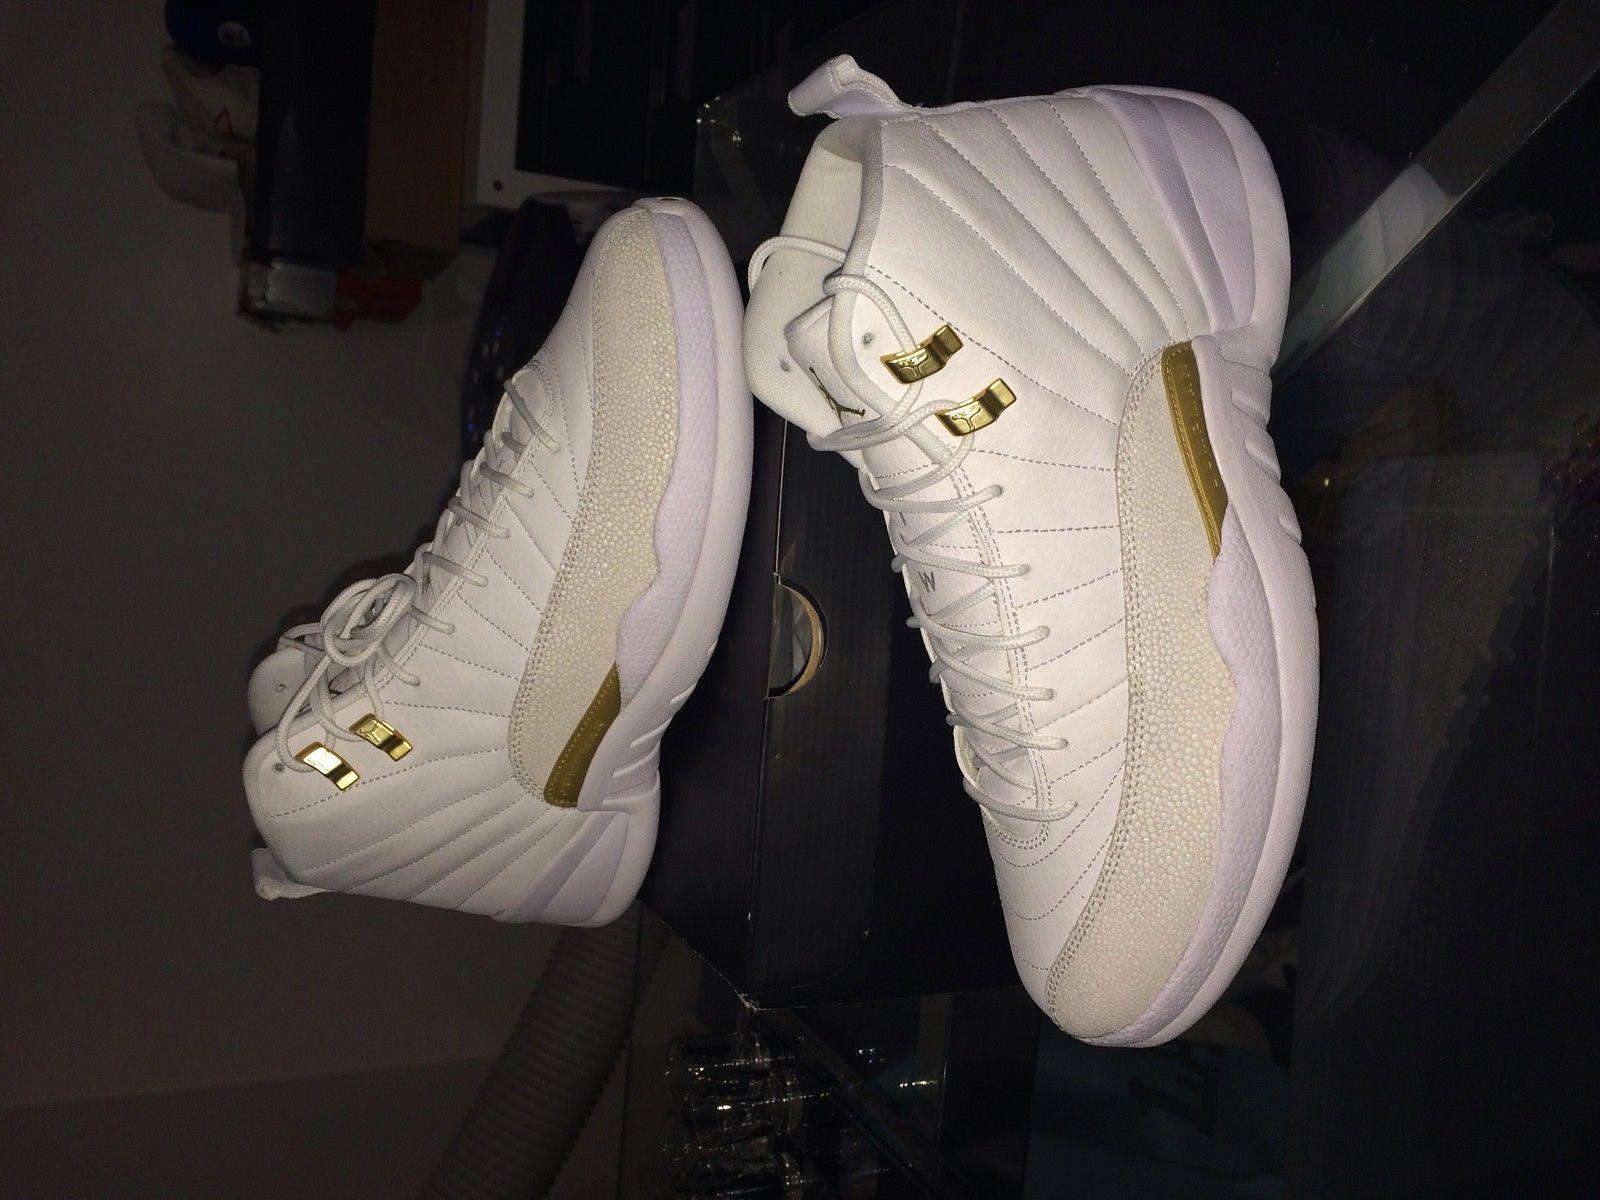 Air Jordan 12 OVO White Price